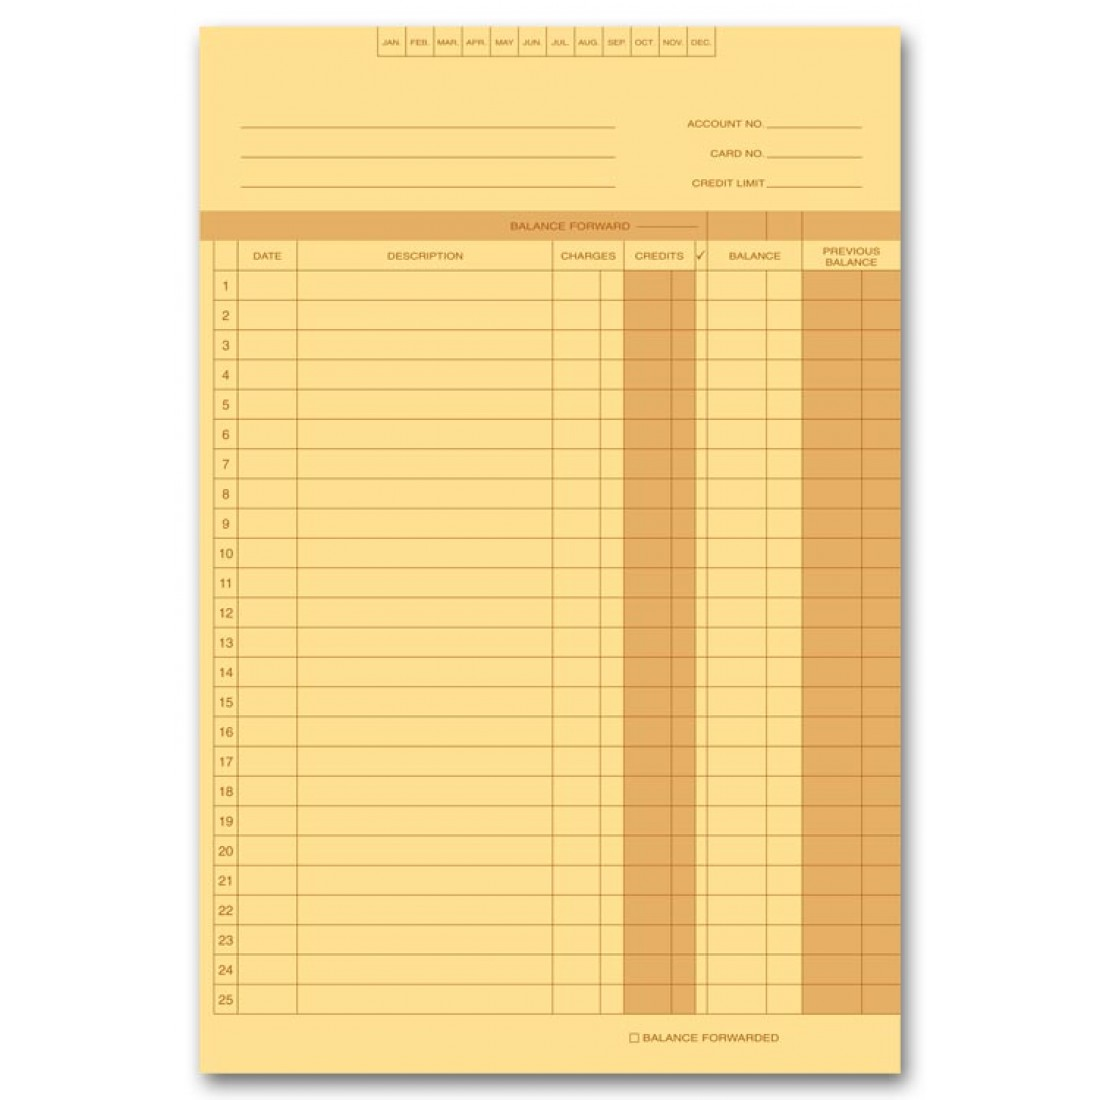 Accounts Receivable Ledgers